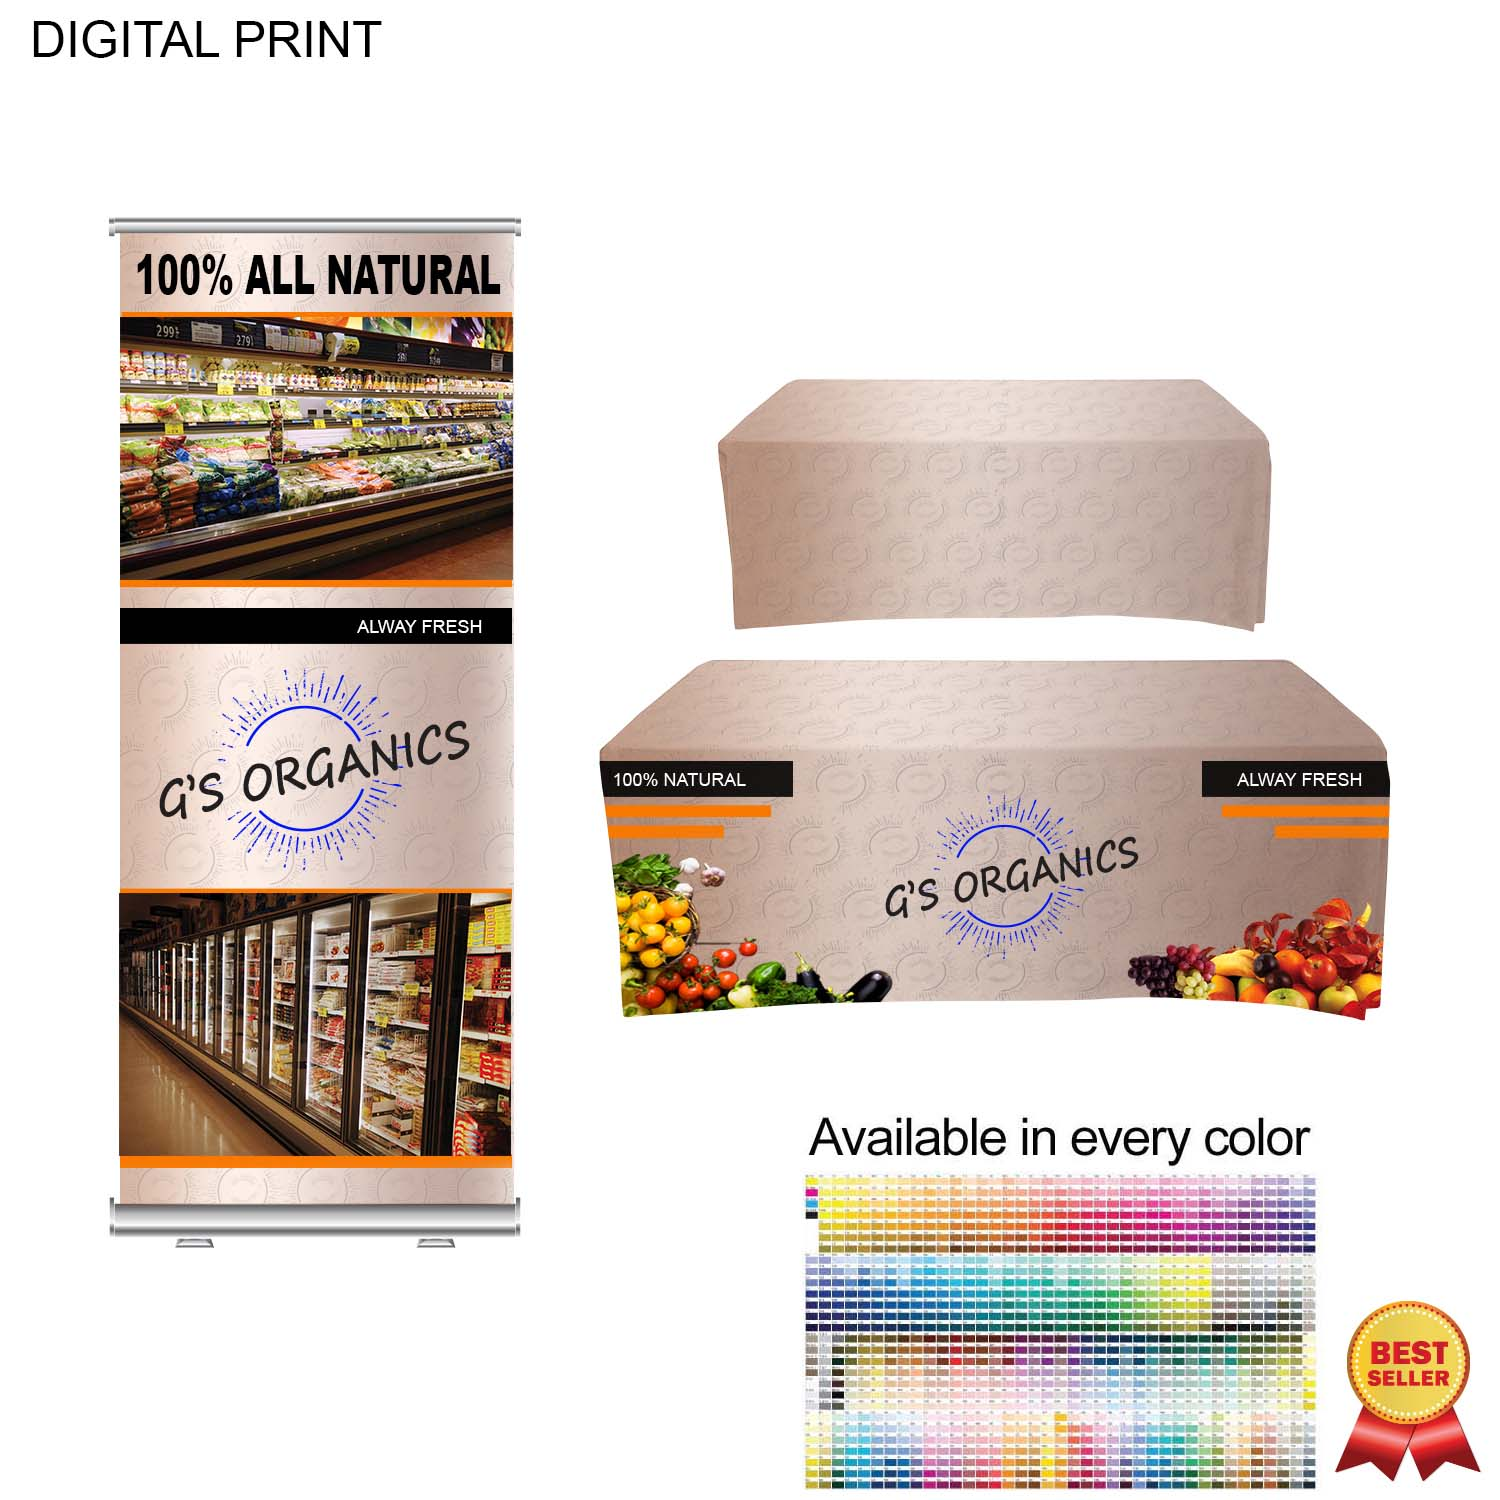 Trade Show Package, Premium Banner + Sublimated Table Throw SU583, Full Colour Imprint